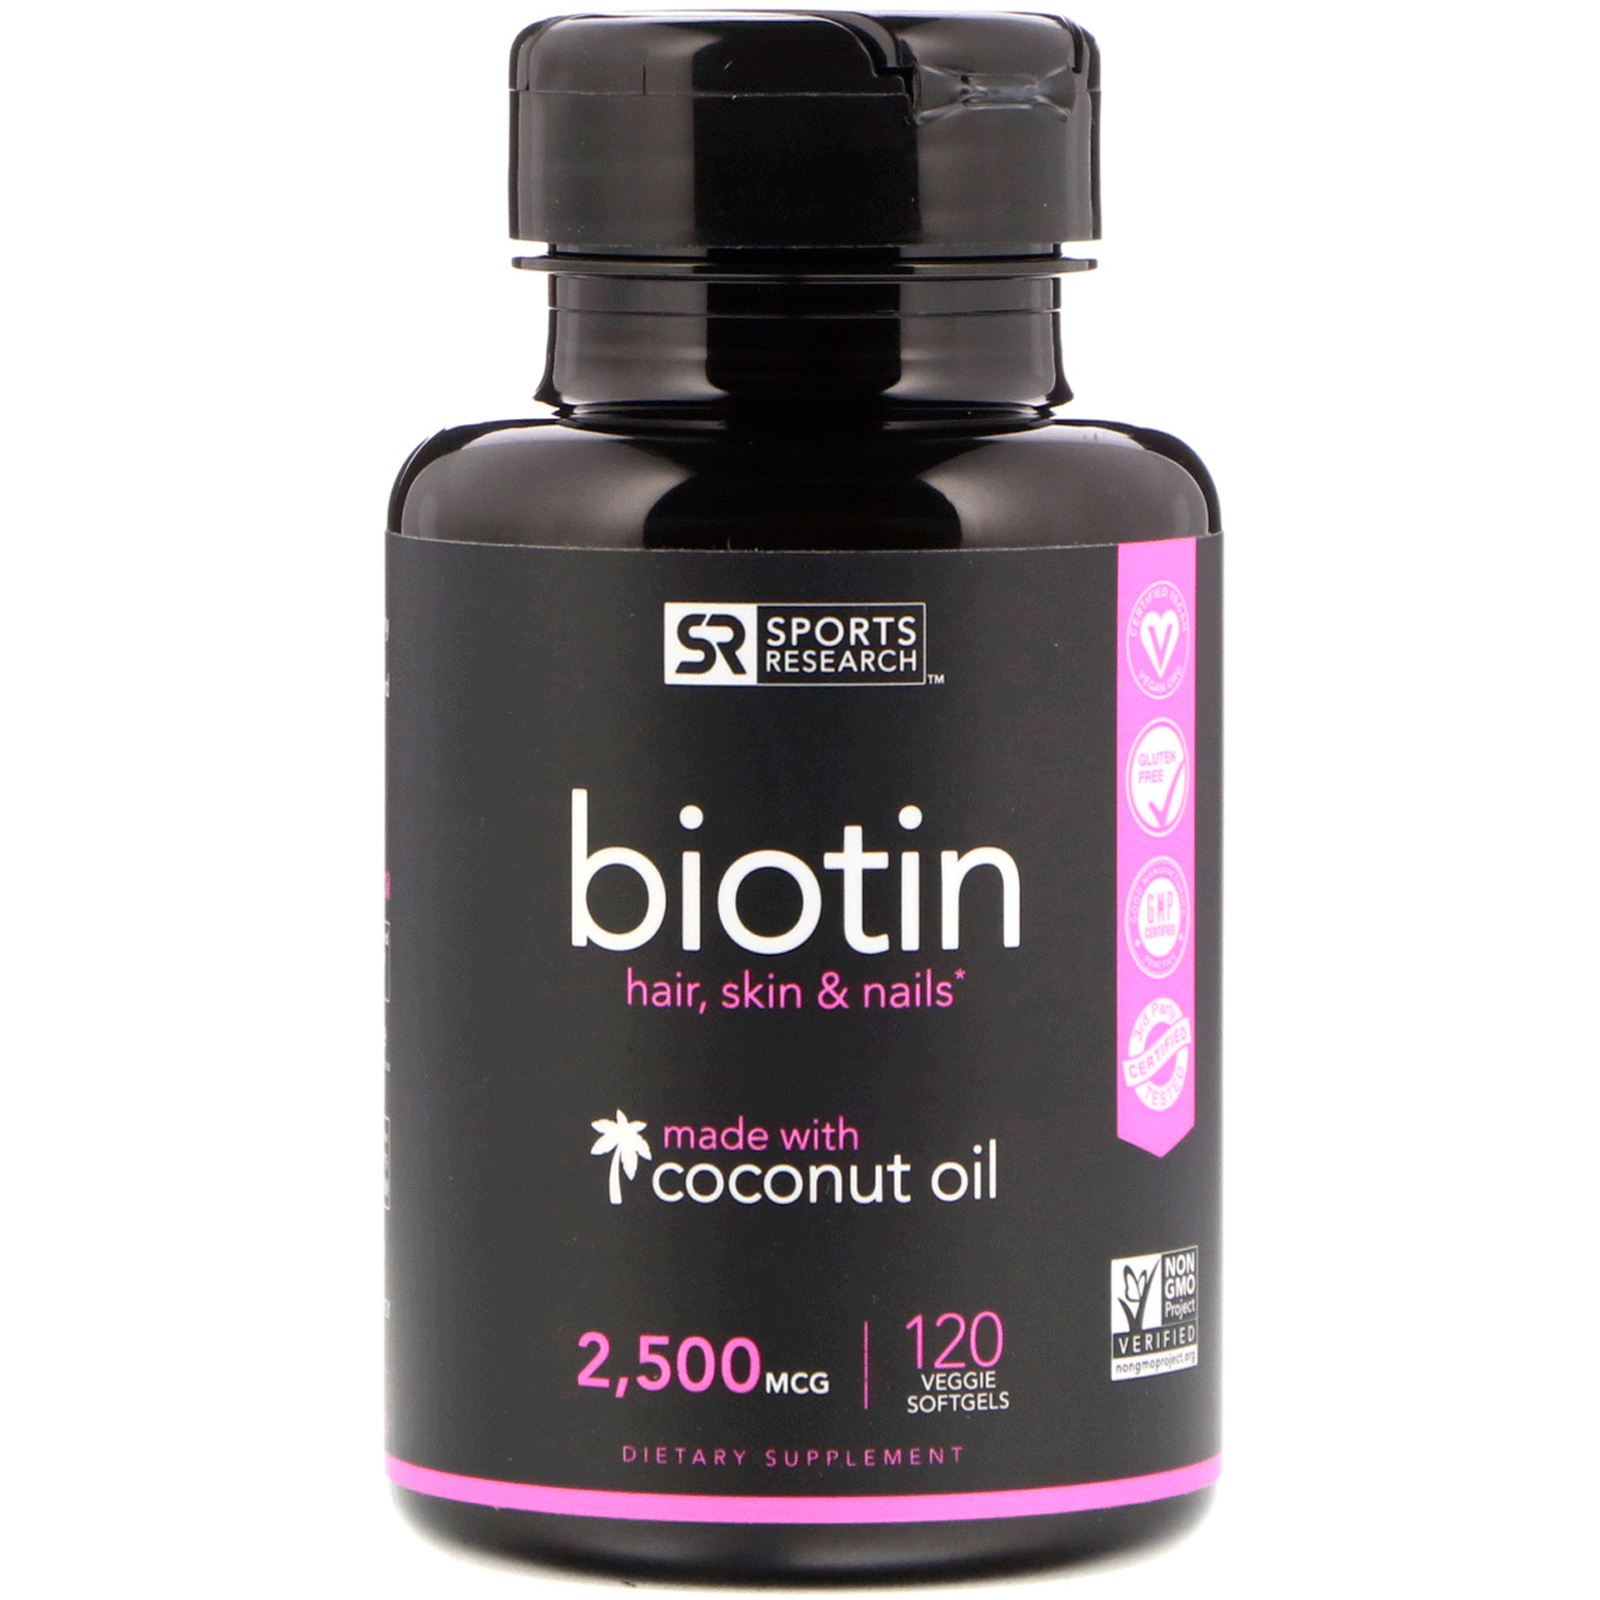 Sports Research  Biotin  2 500 mcg  120 Veggie Softgels